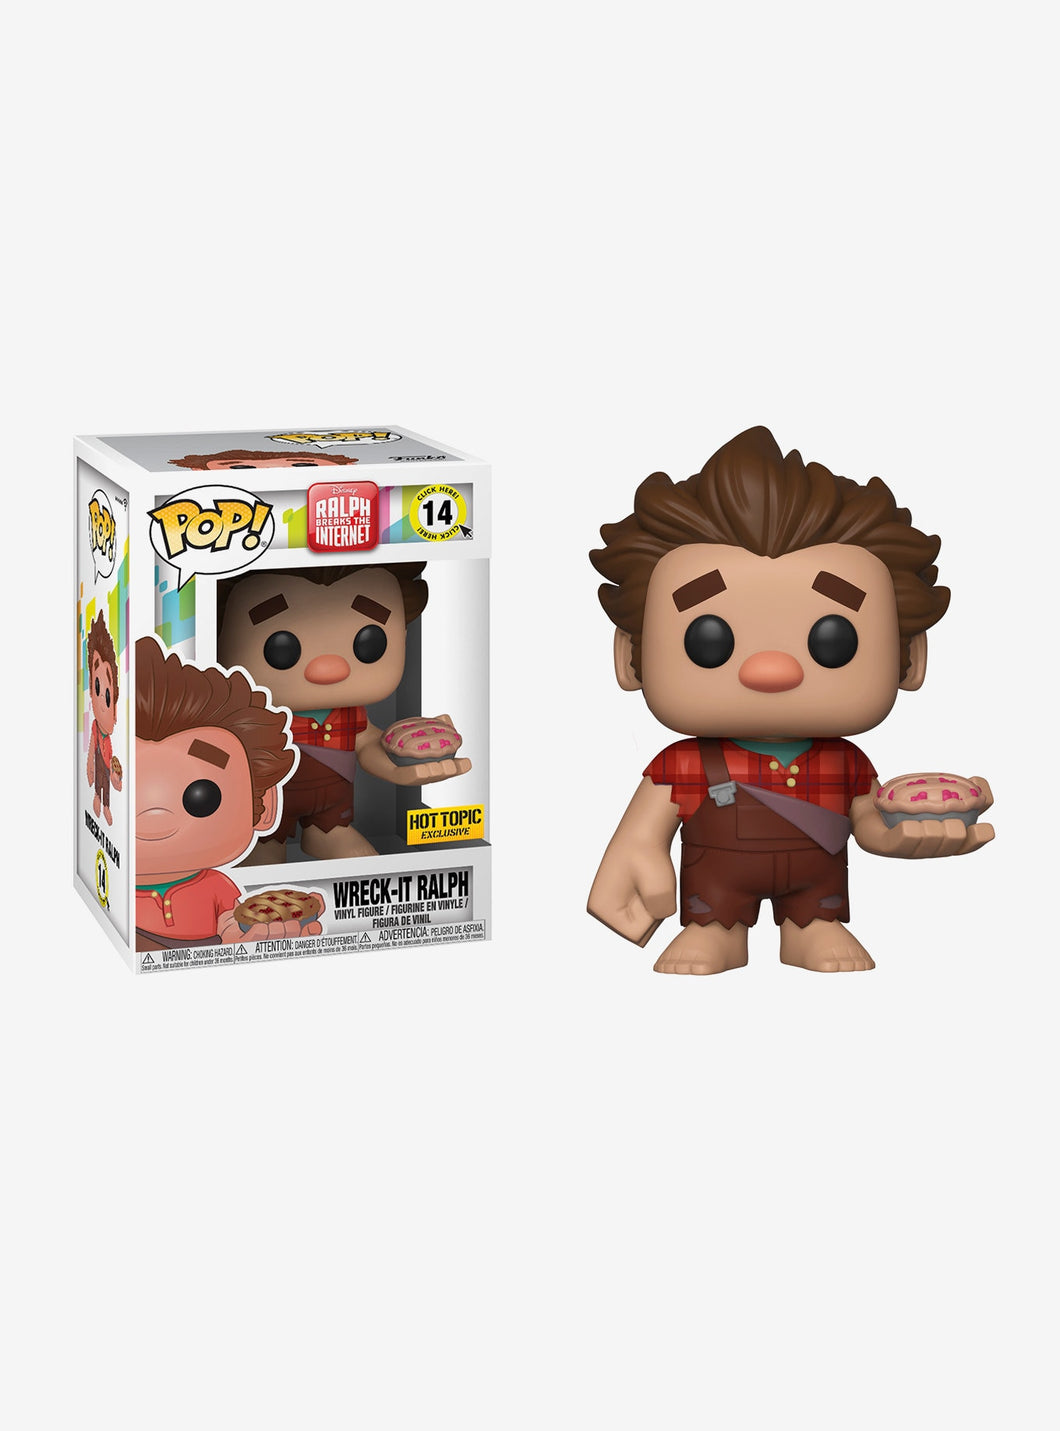 Ralph Breaks the Internet: Wreck-IT Ralph - Hot Topic Exclusive